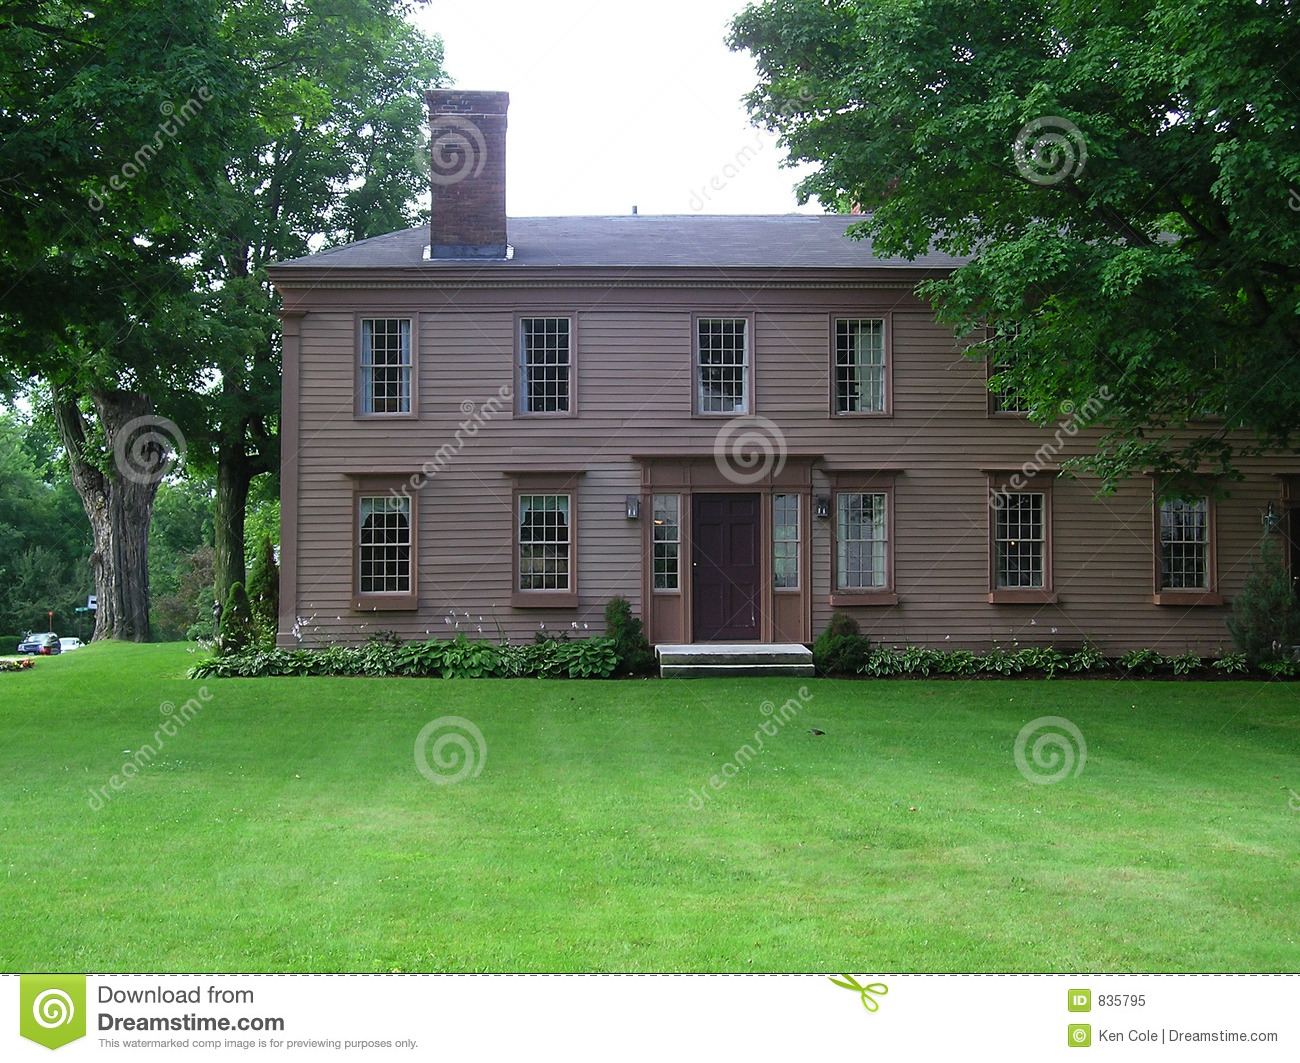 Old new england georgian colonial style house stock image for New england colonial style